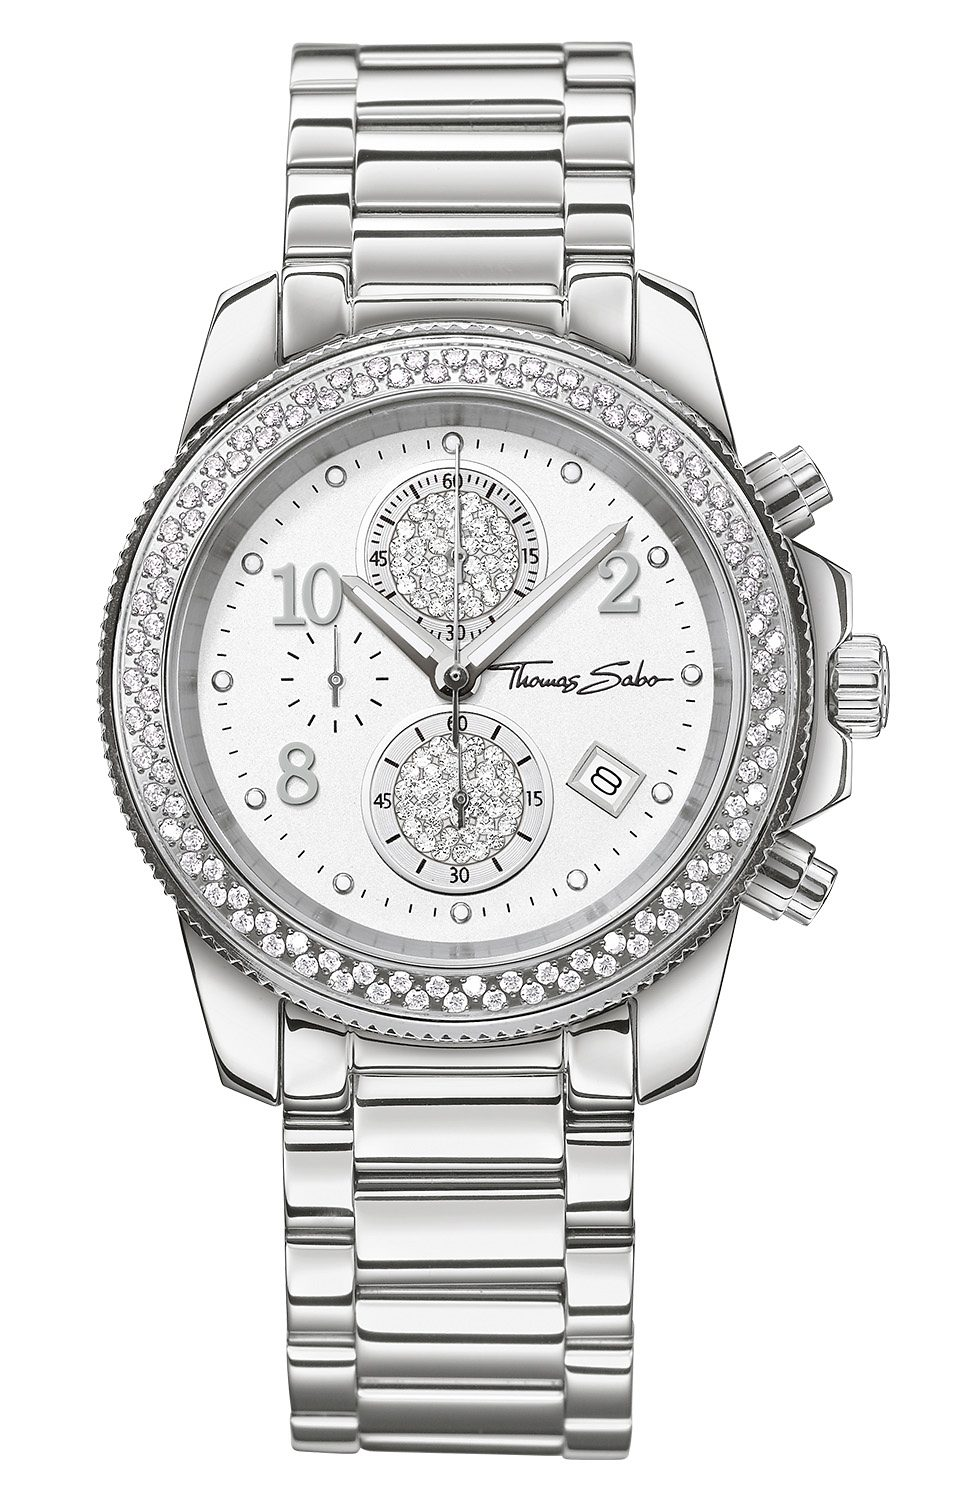 Thomas Sabo Chronograph »GLAM CHRONO, WA0201«